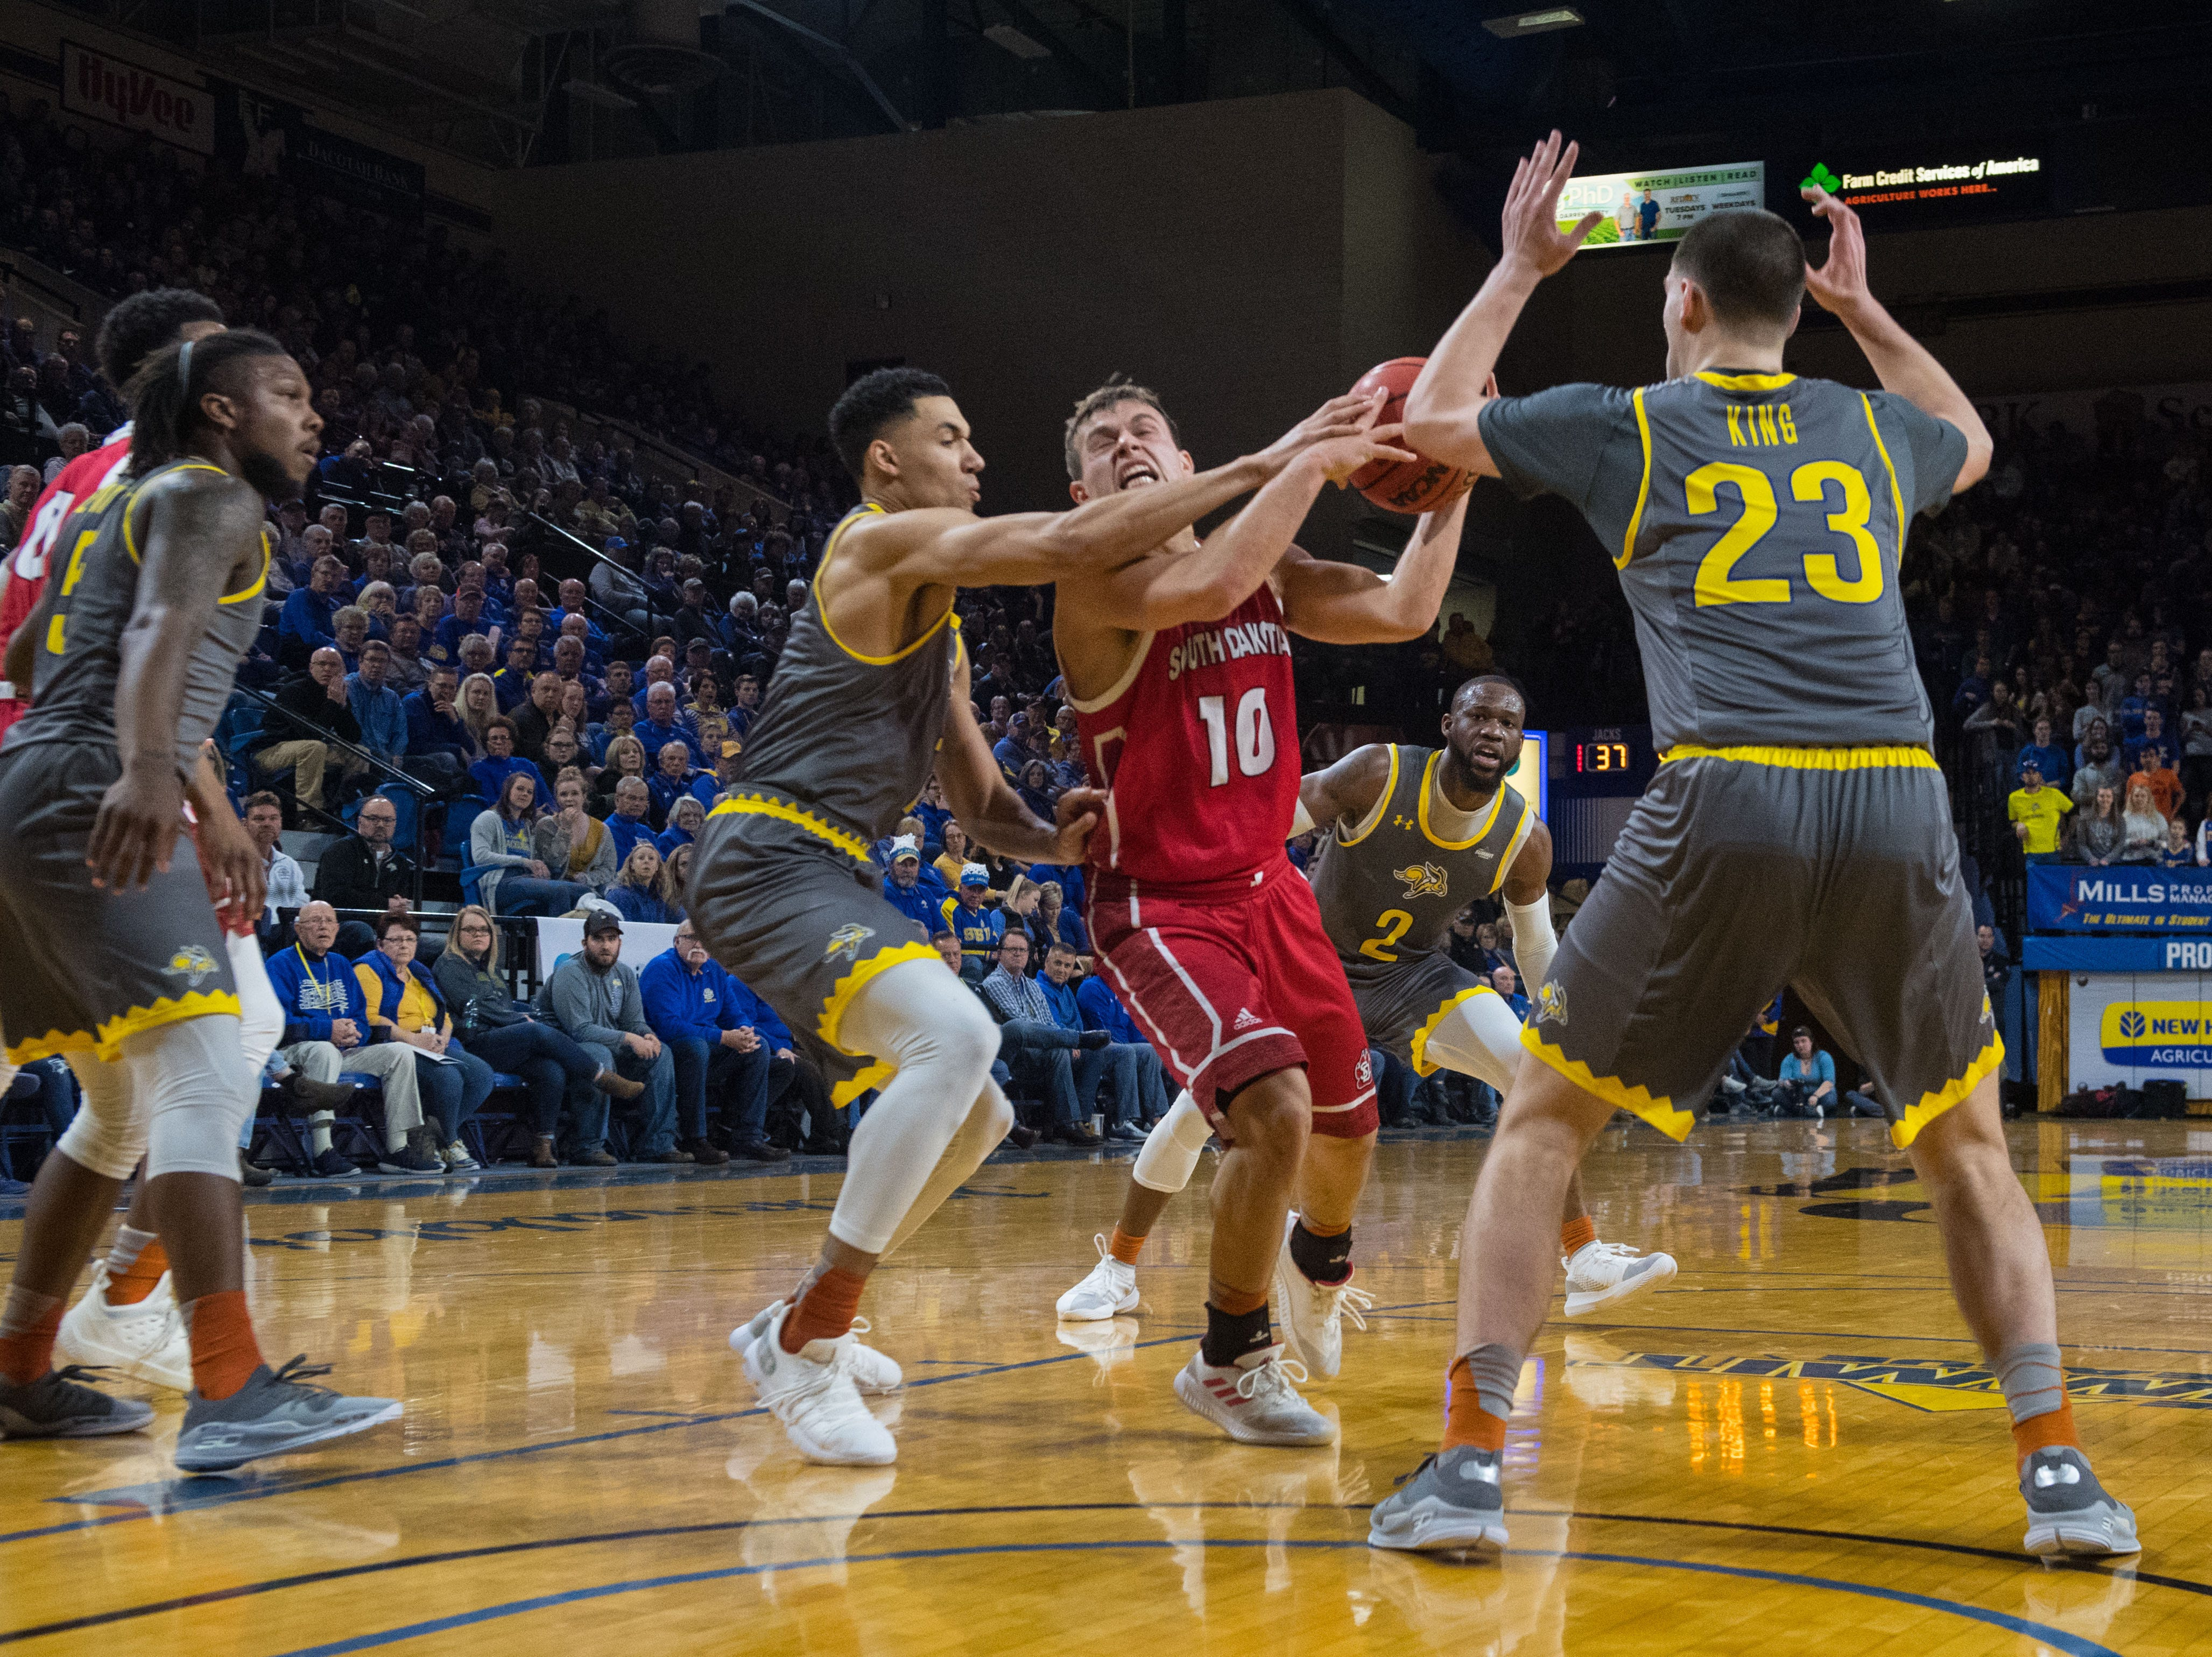 SDSU players block USD's Cody Kelley (10) during a game against SDSU, Saturday, Feb. 23, 2019 in Brookings, S.D.